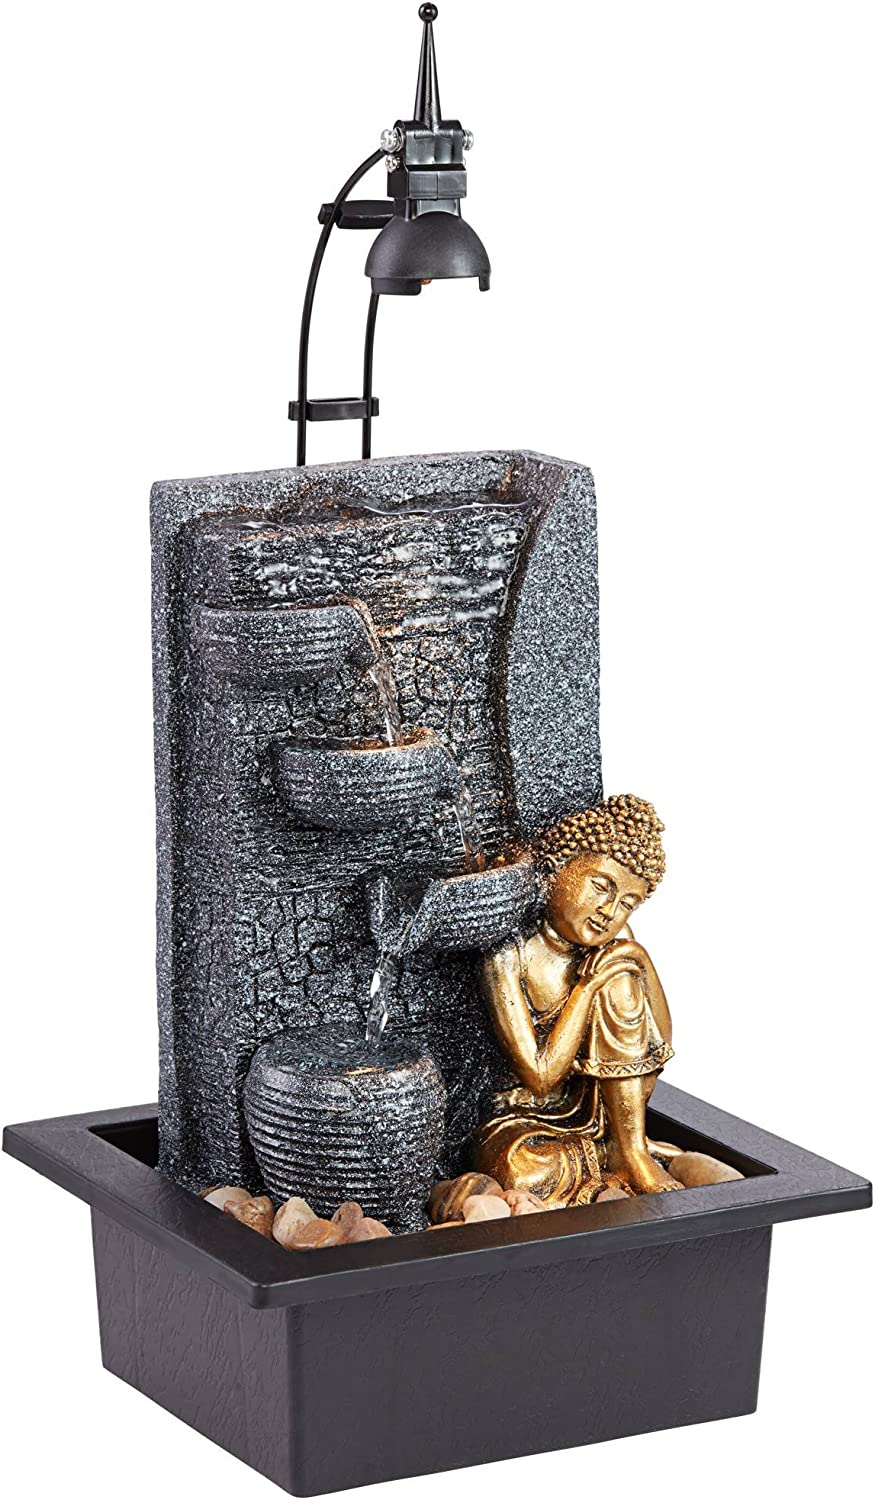 "John Timberland Kneeling Buddha Asian Zen Indoor Table-Top Water Fountain with Light LED 17"" High Cascading for Table Desk Home Office Bedroom Relaxation"